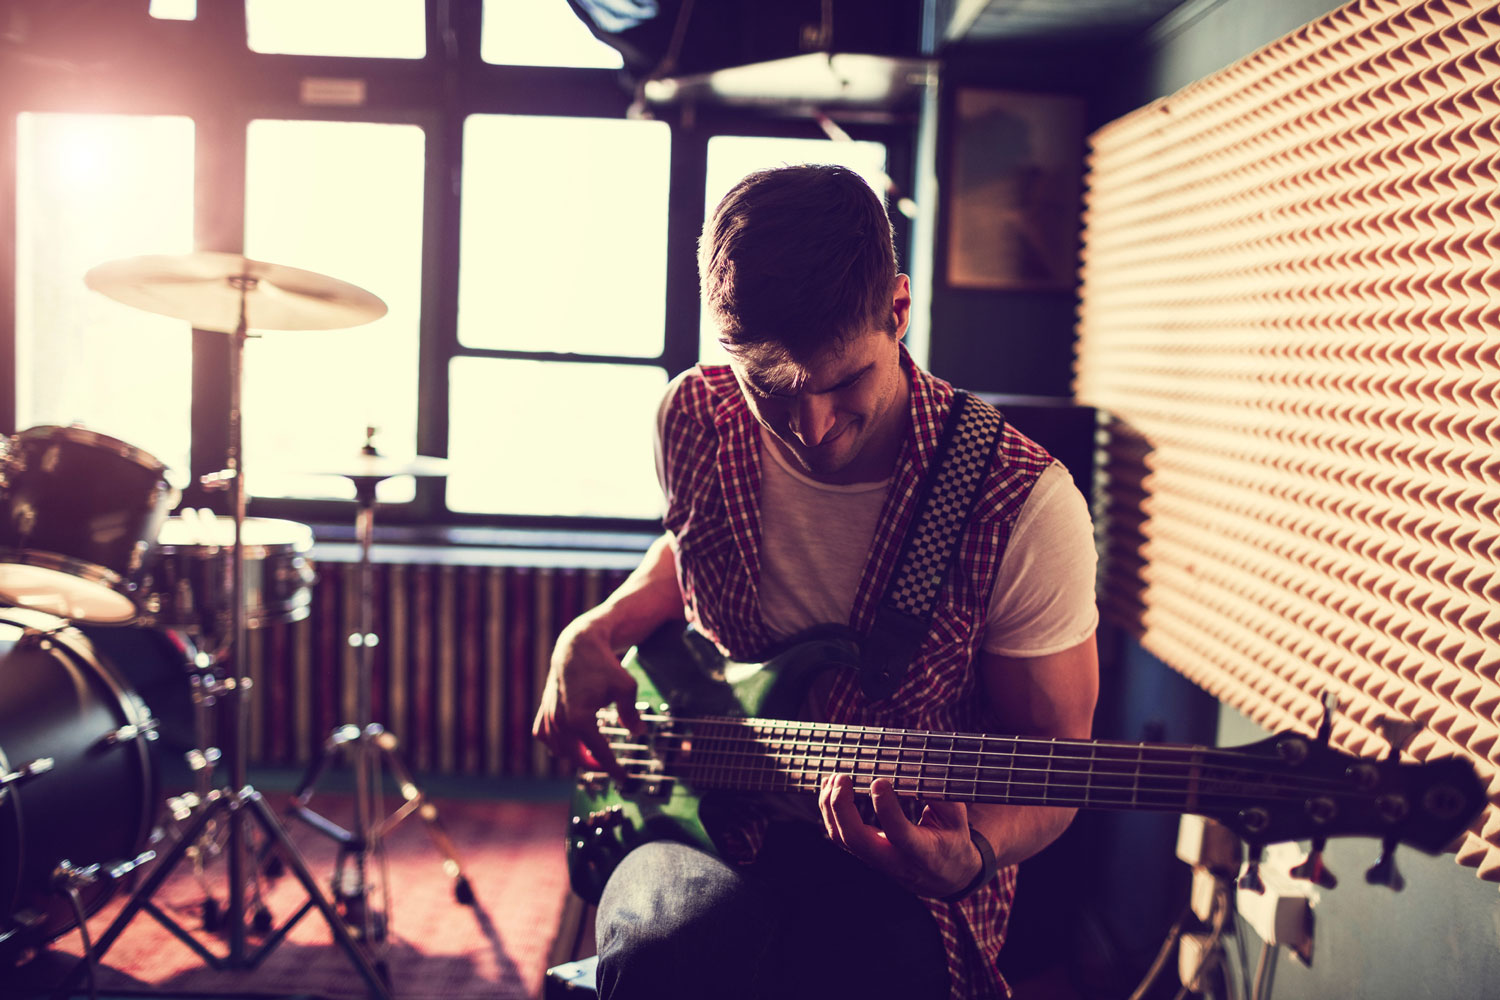 4 Things Most People Get Wrong About Serious Musicians